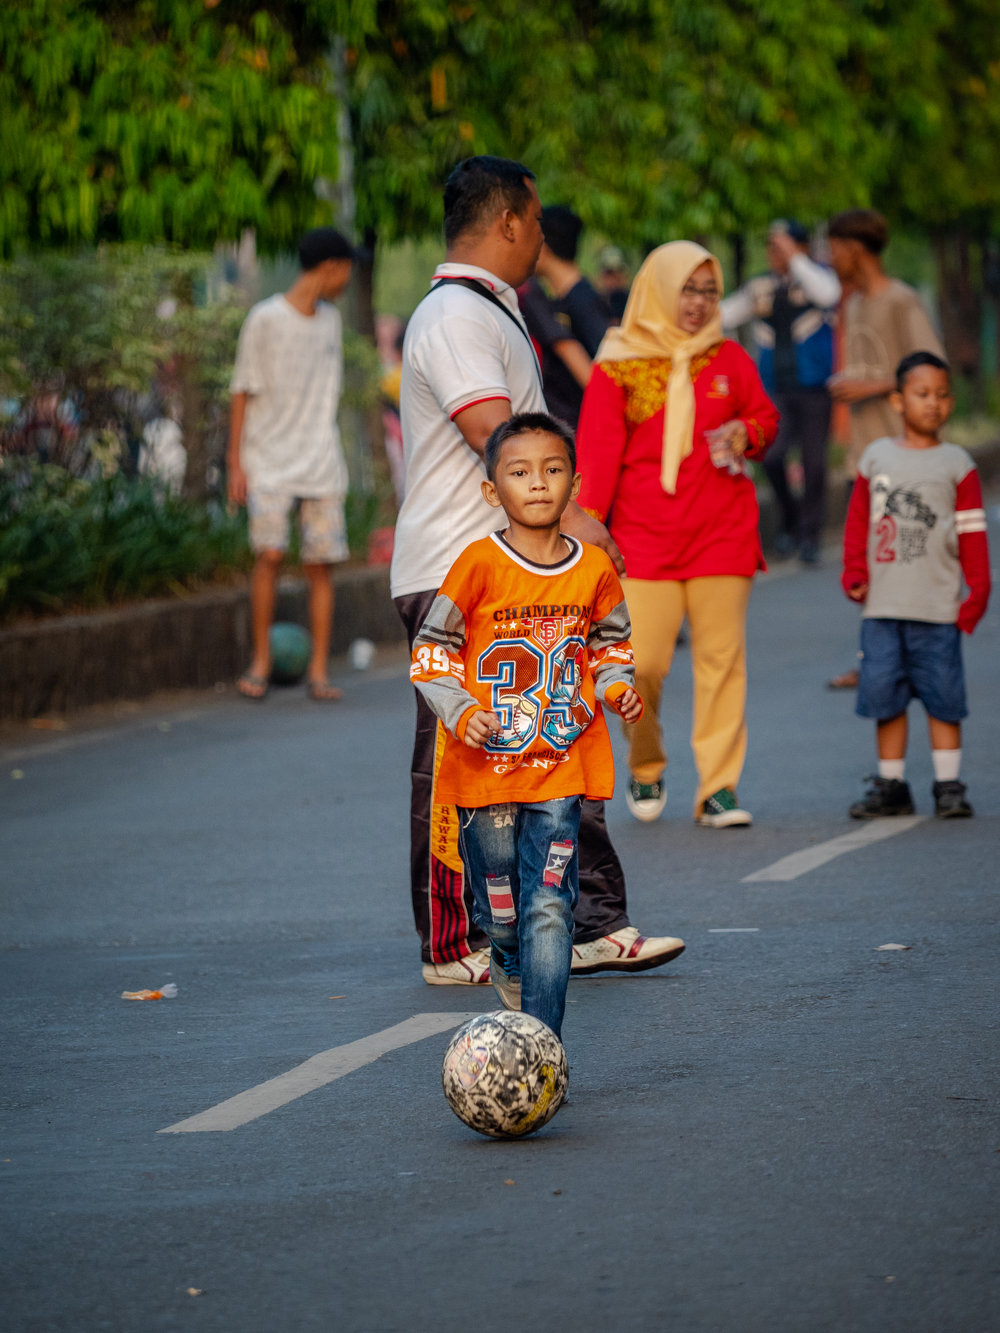 Life on the Street in Lubuklinggau - Paved Futbol Pitch